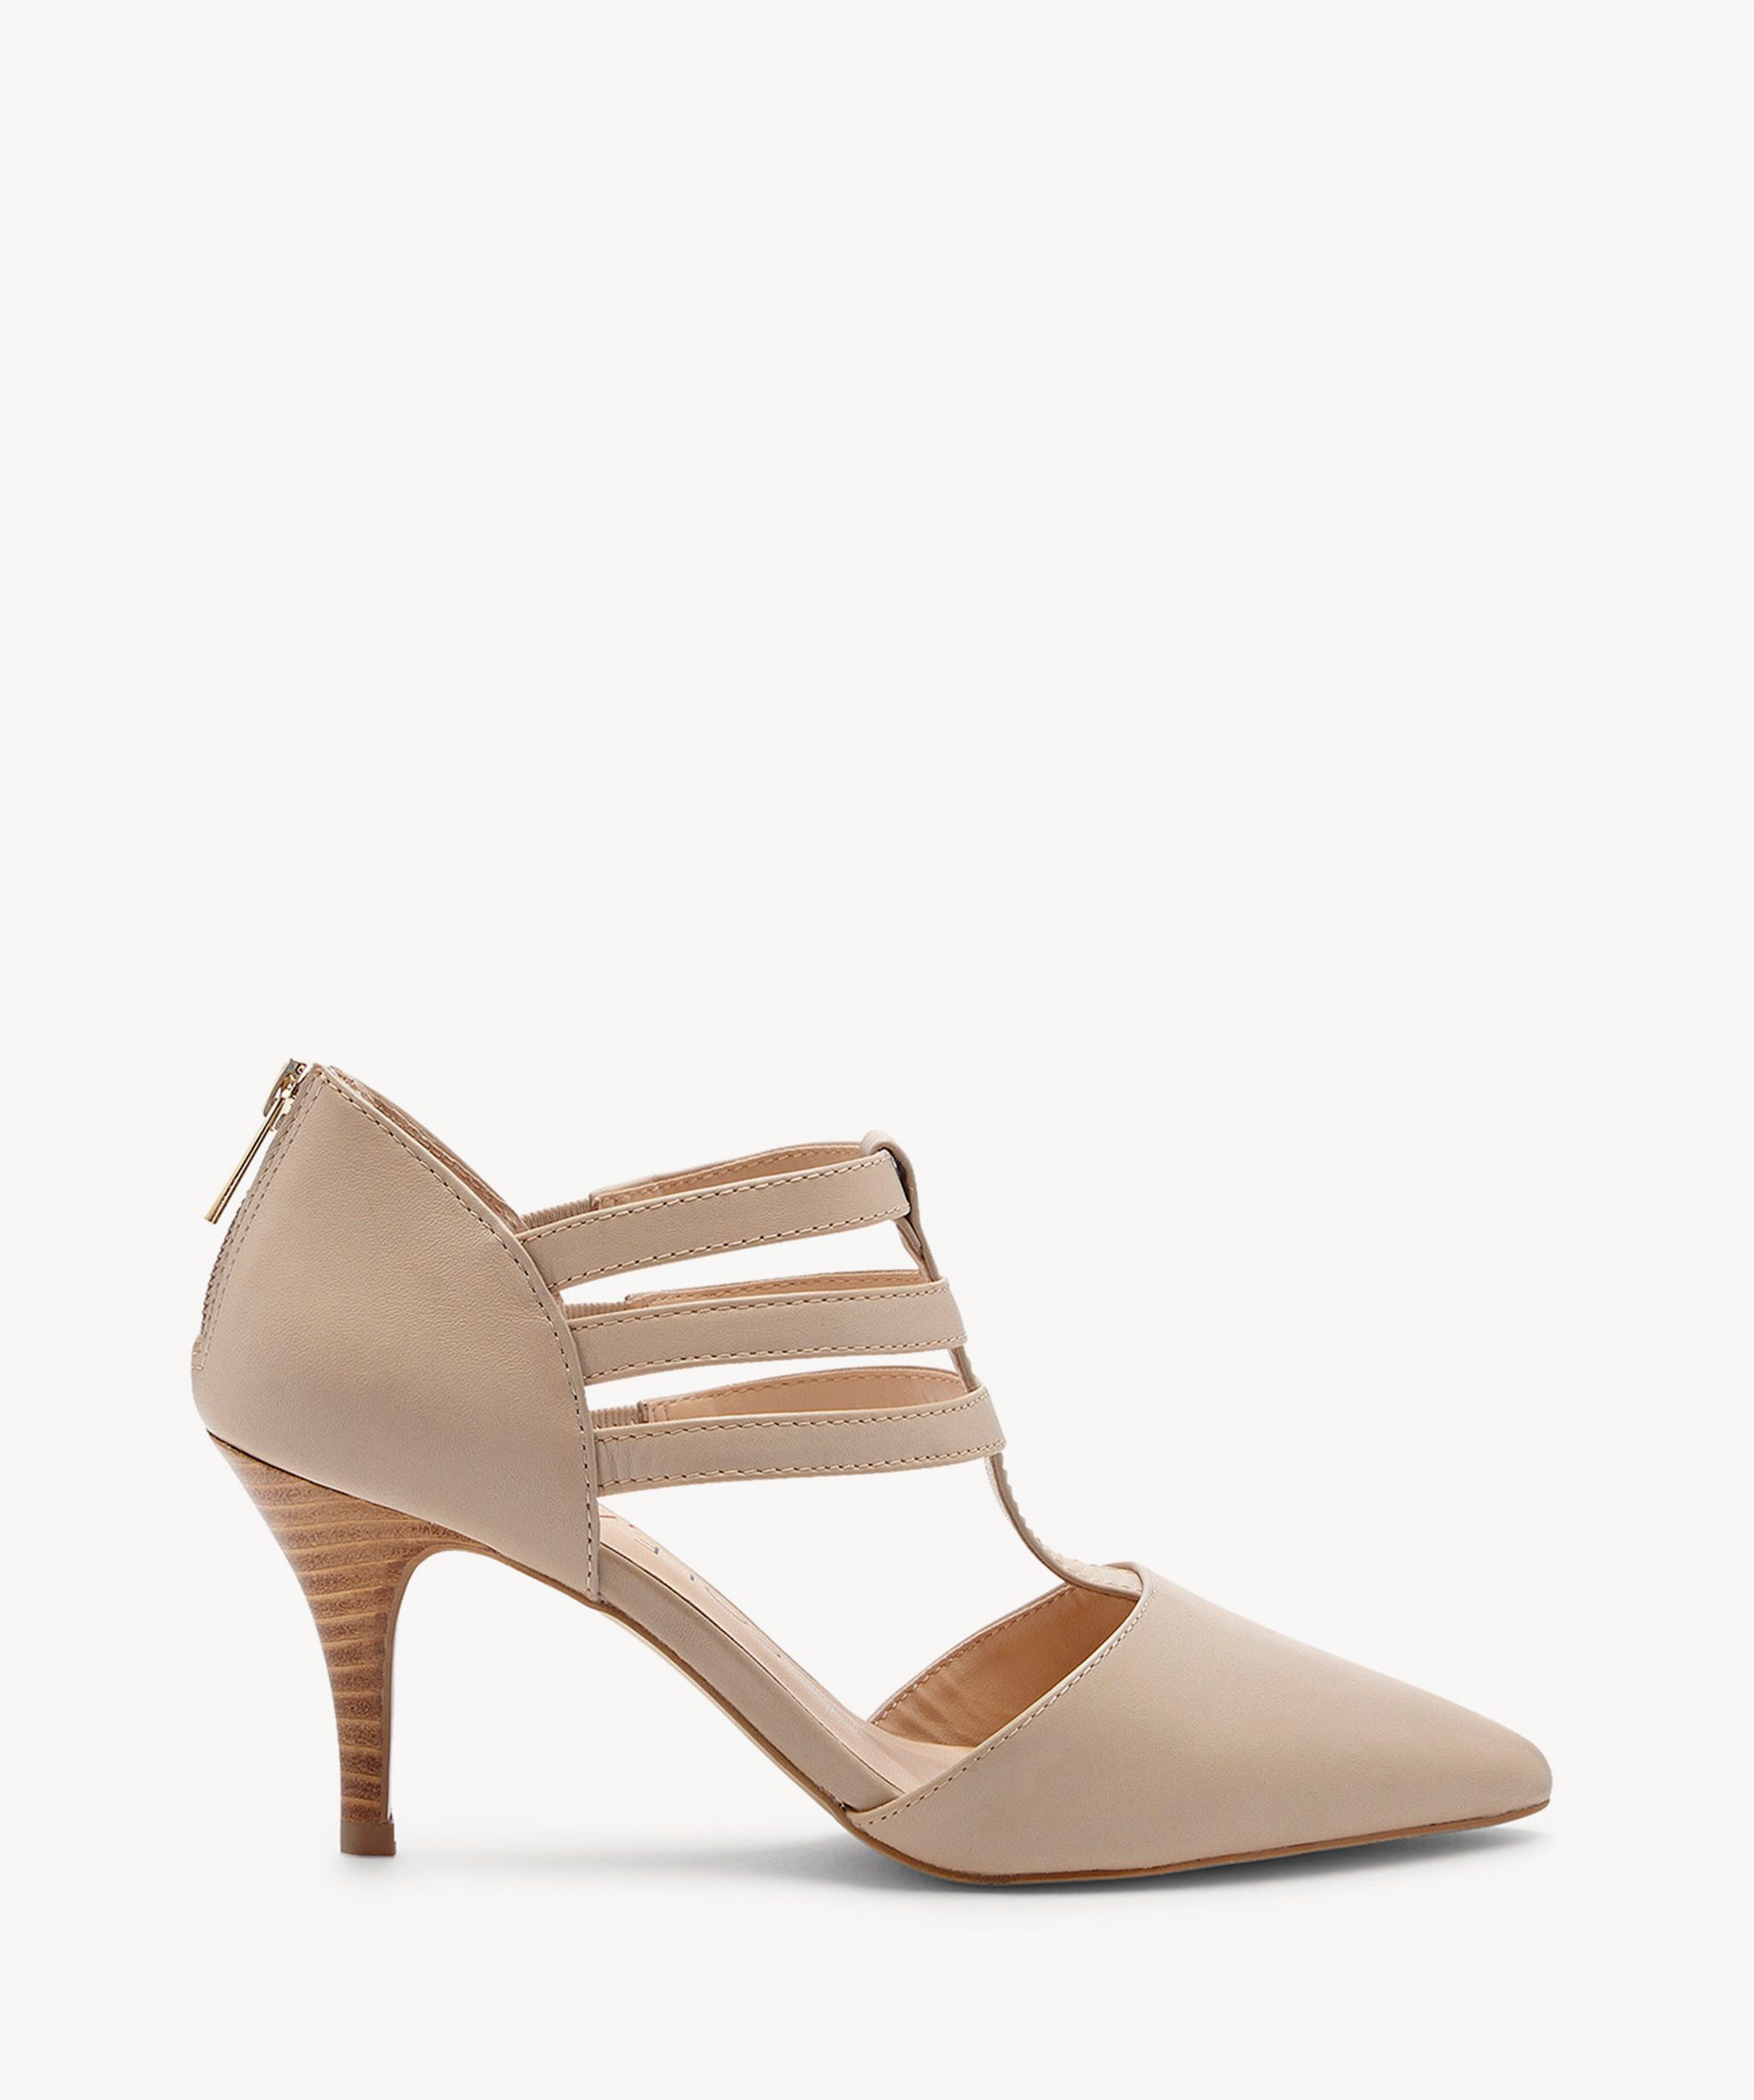 185cfe6af6e Sole Society Mallory T Strap Heels French Taupe